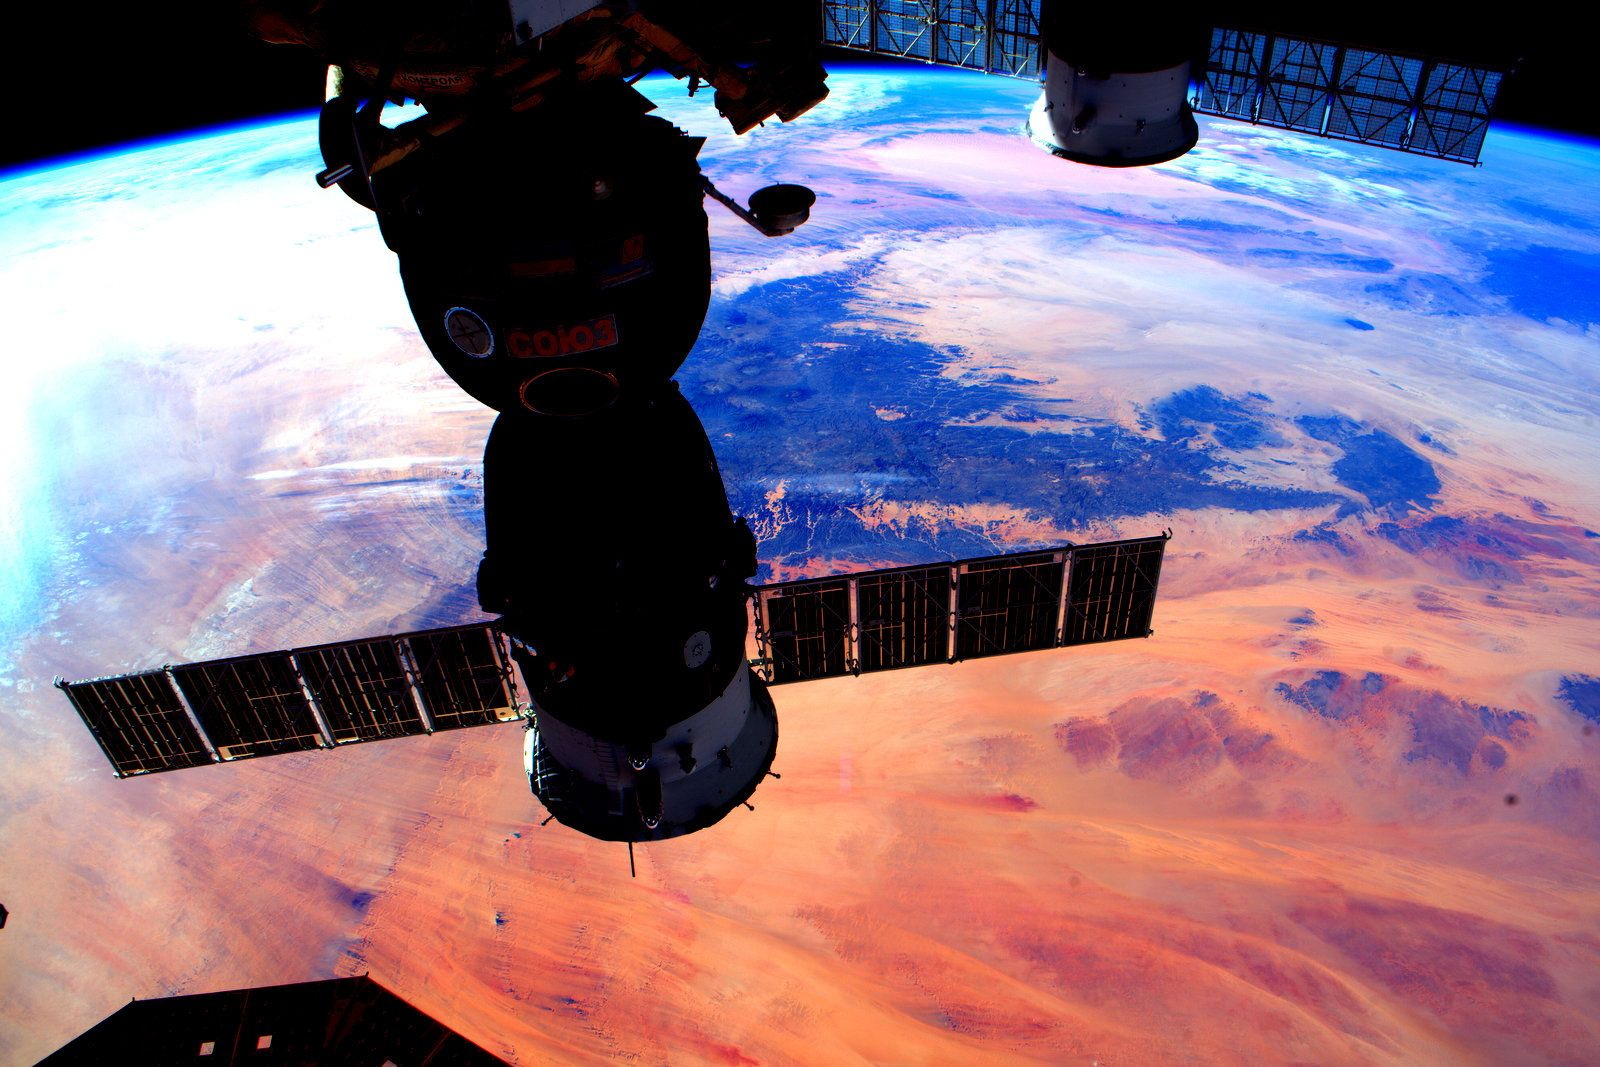 Sunset on Earth behind Soyuz spacecraft docked at ISS